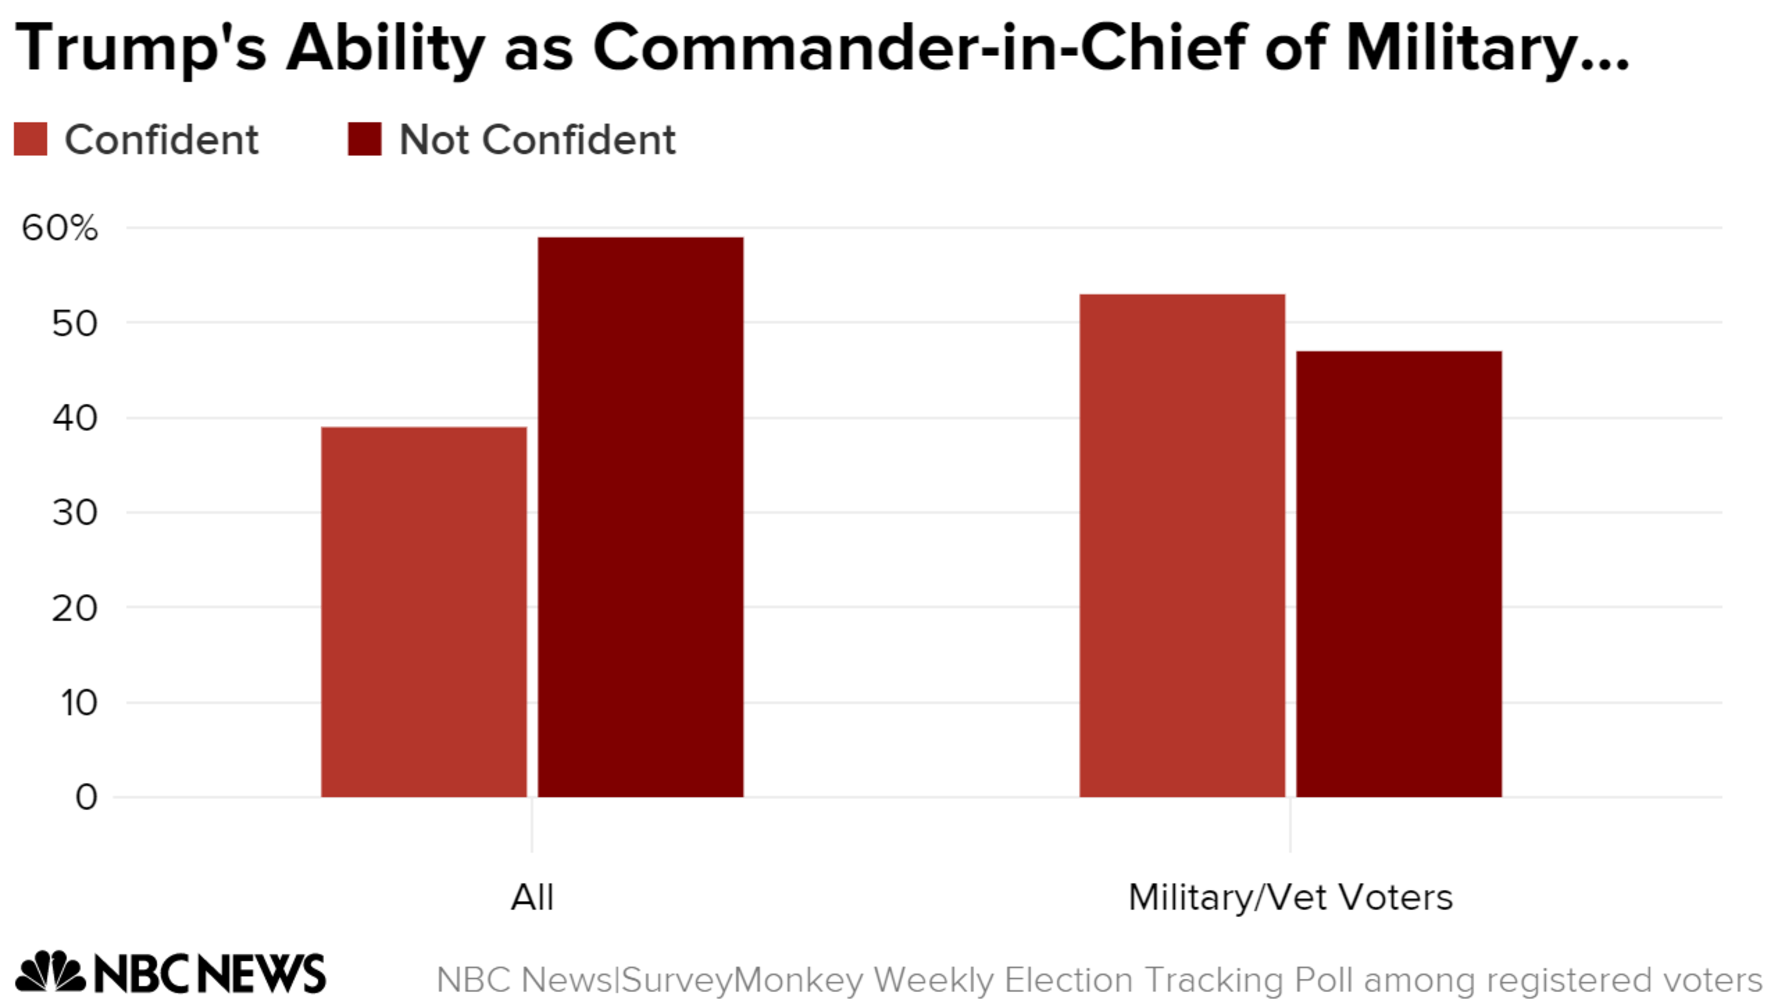 Poll Trump Leads Clinton Among Military And Veteran Voters